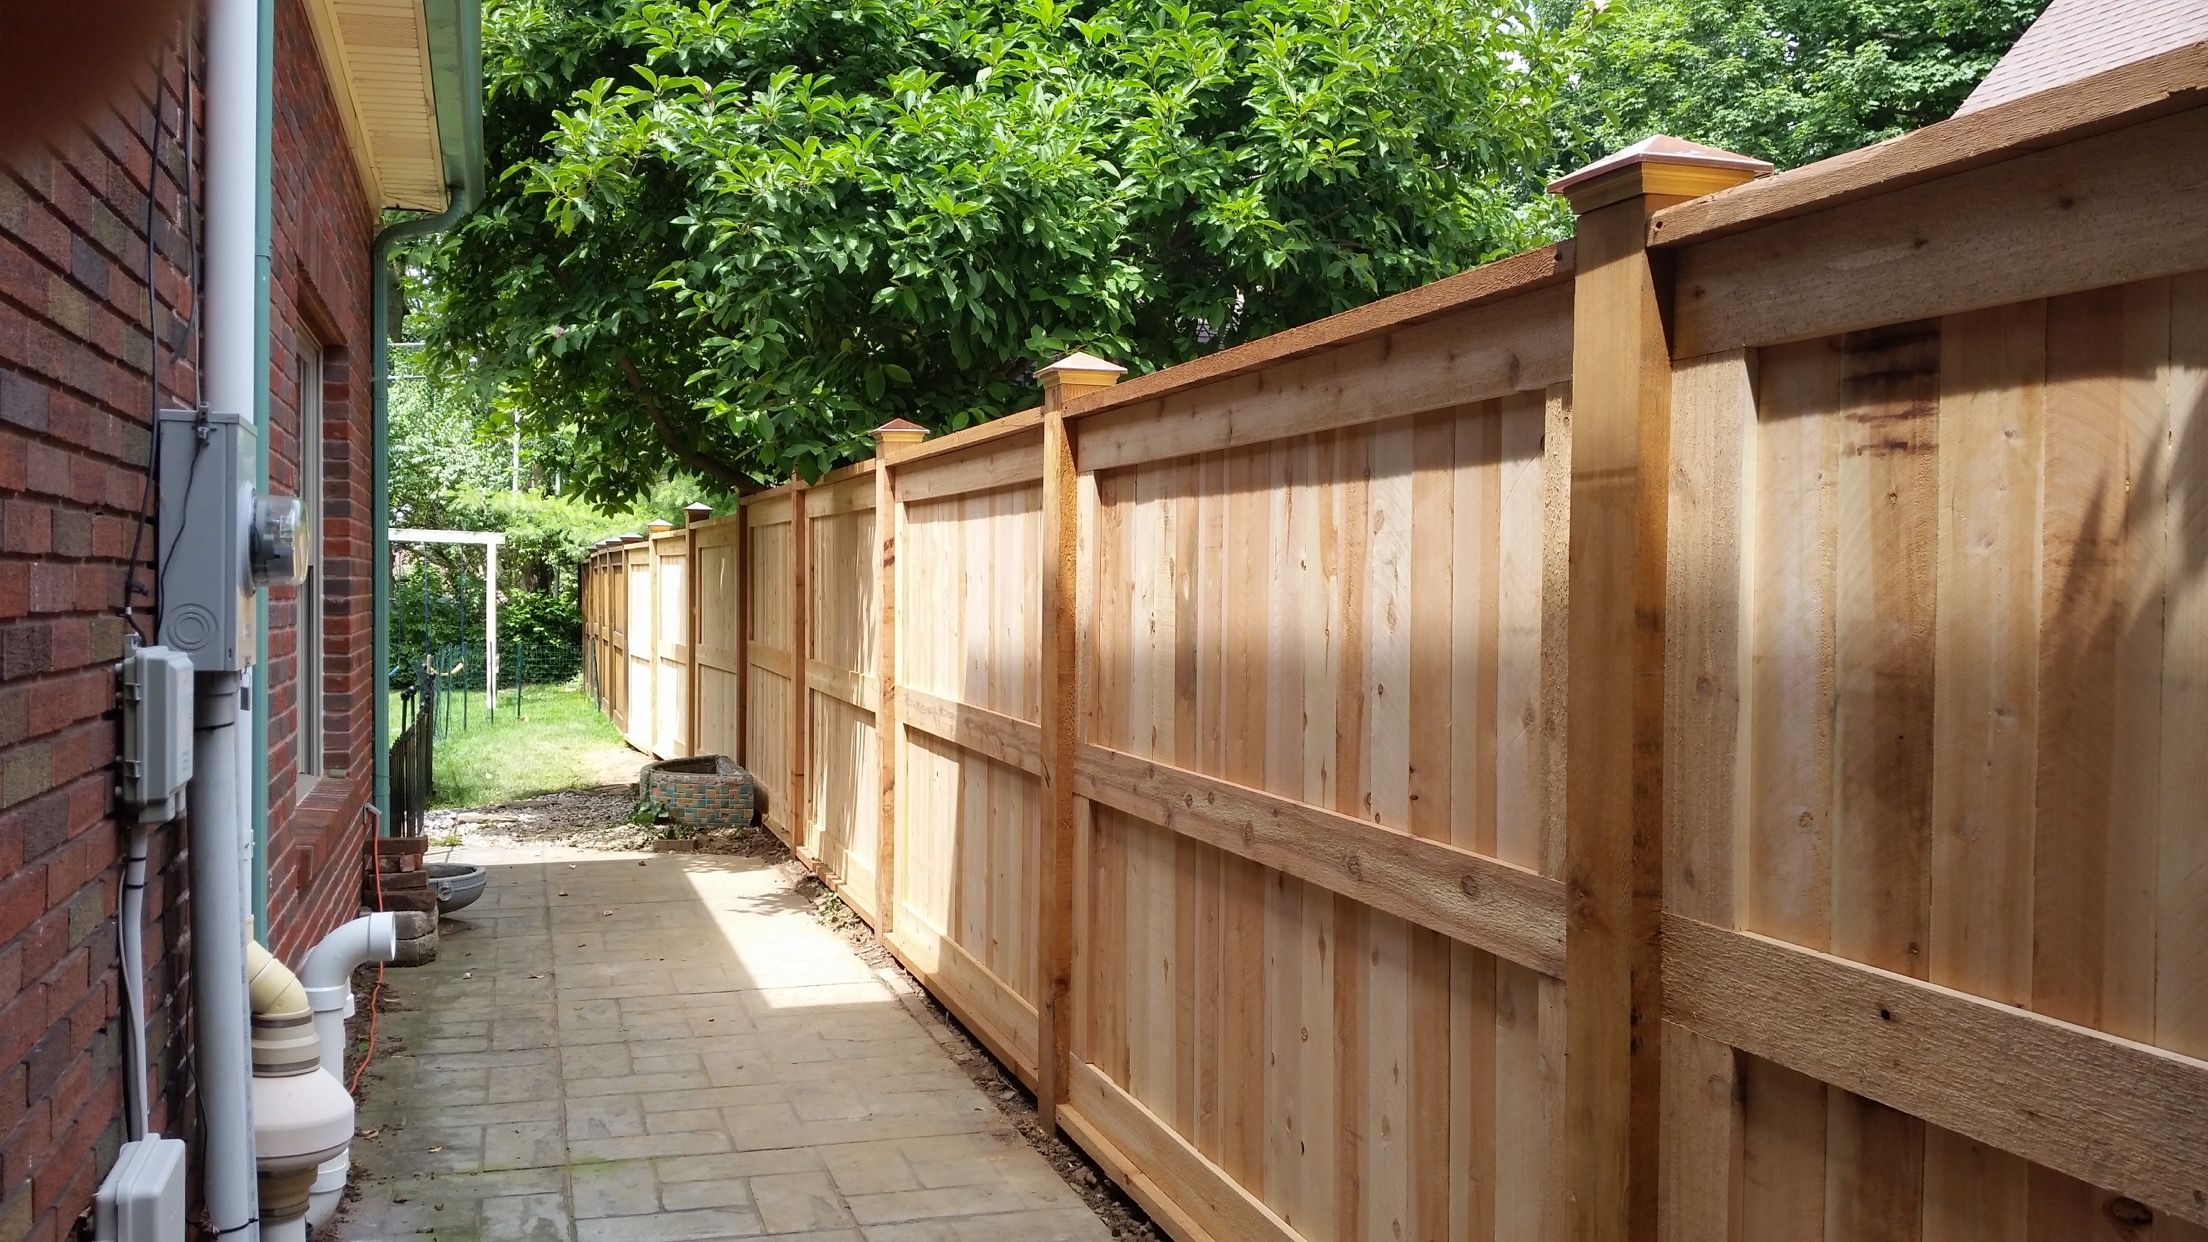 #Cedar Dual Window Picture Frame Fence With Caps #Privacyfence #Fencecaps